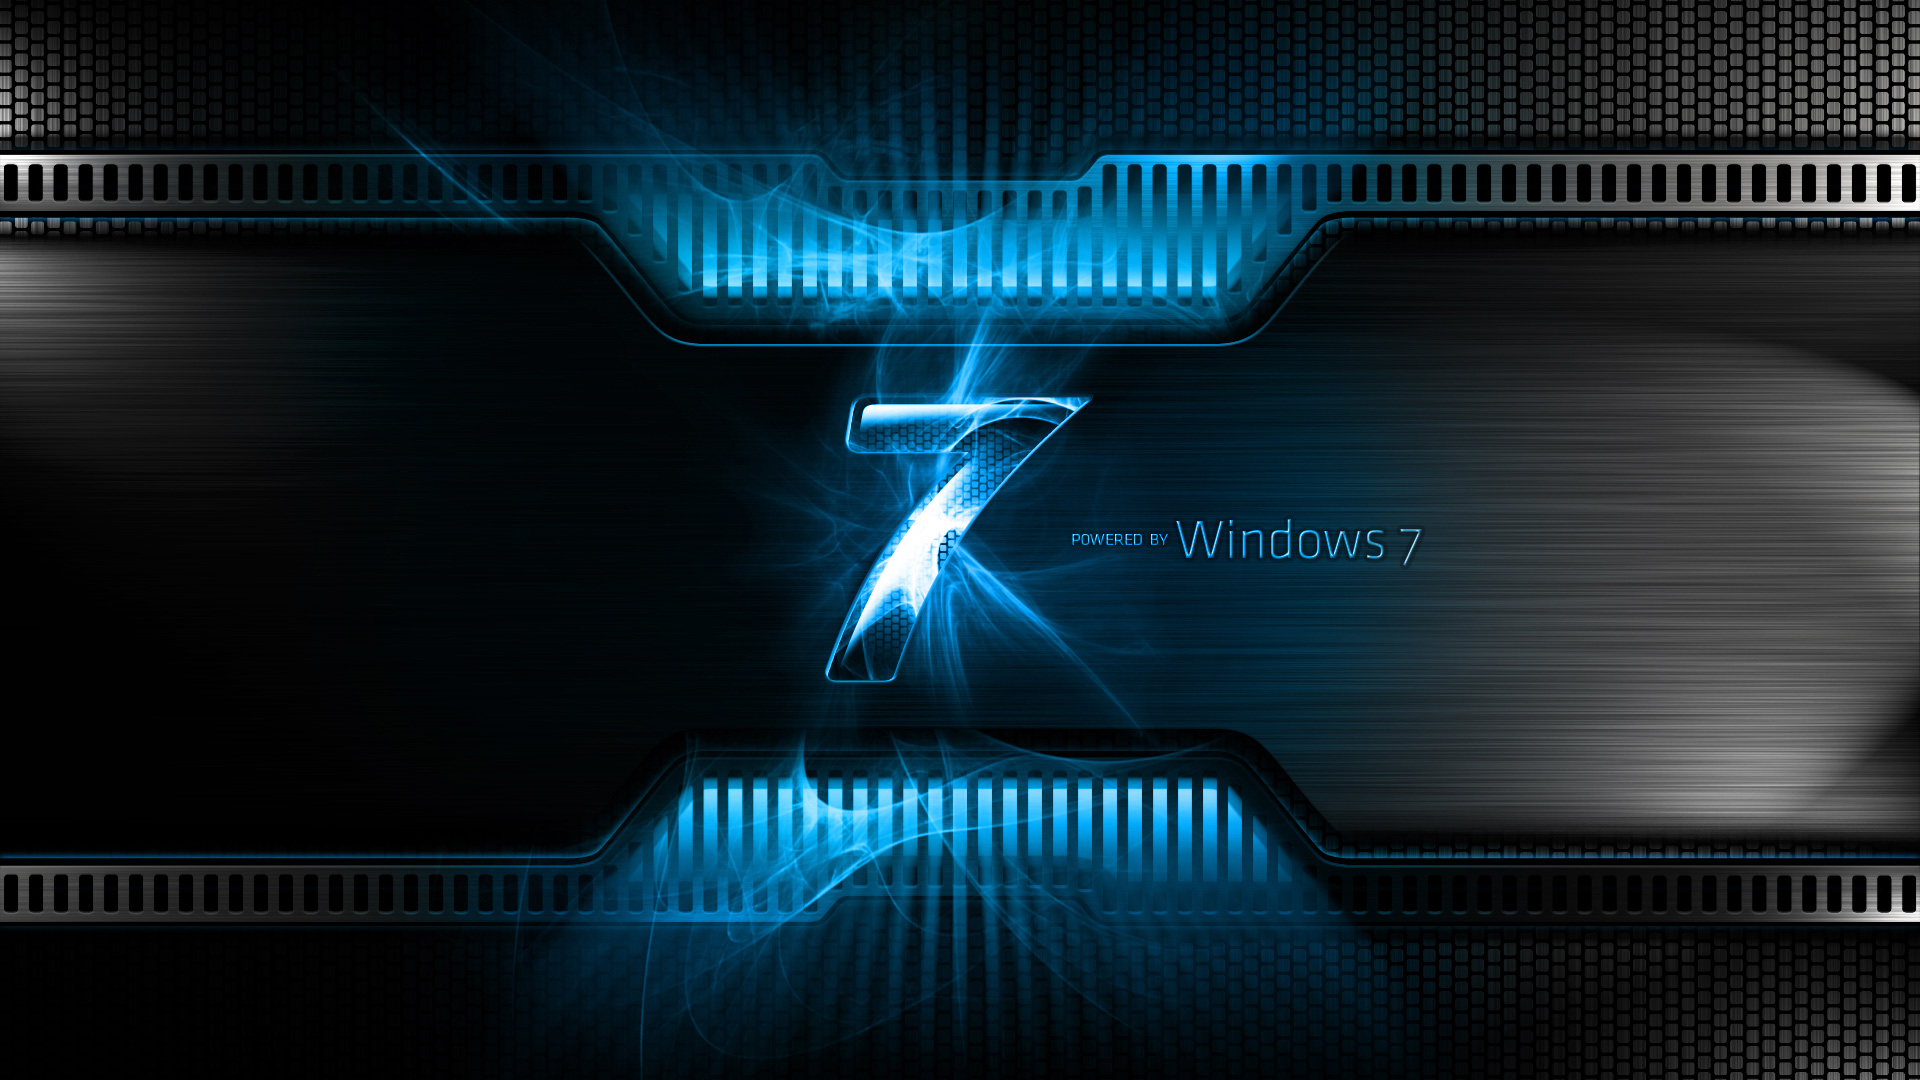 windows 7 black wallpaper hd 26 background wallpaper